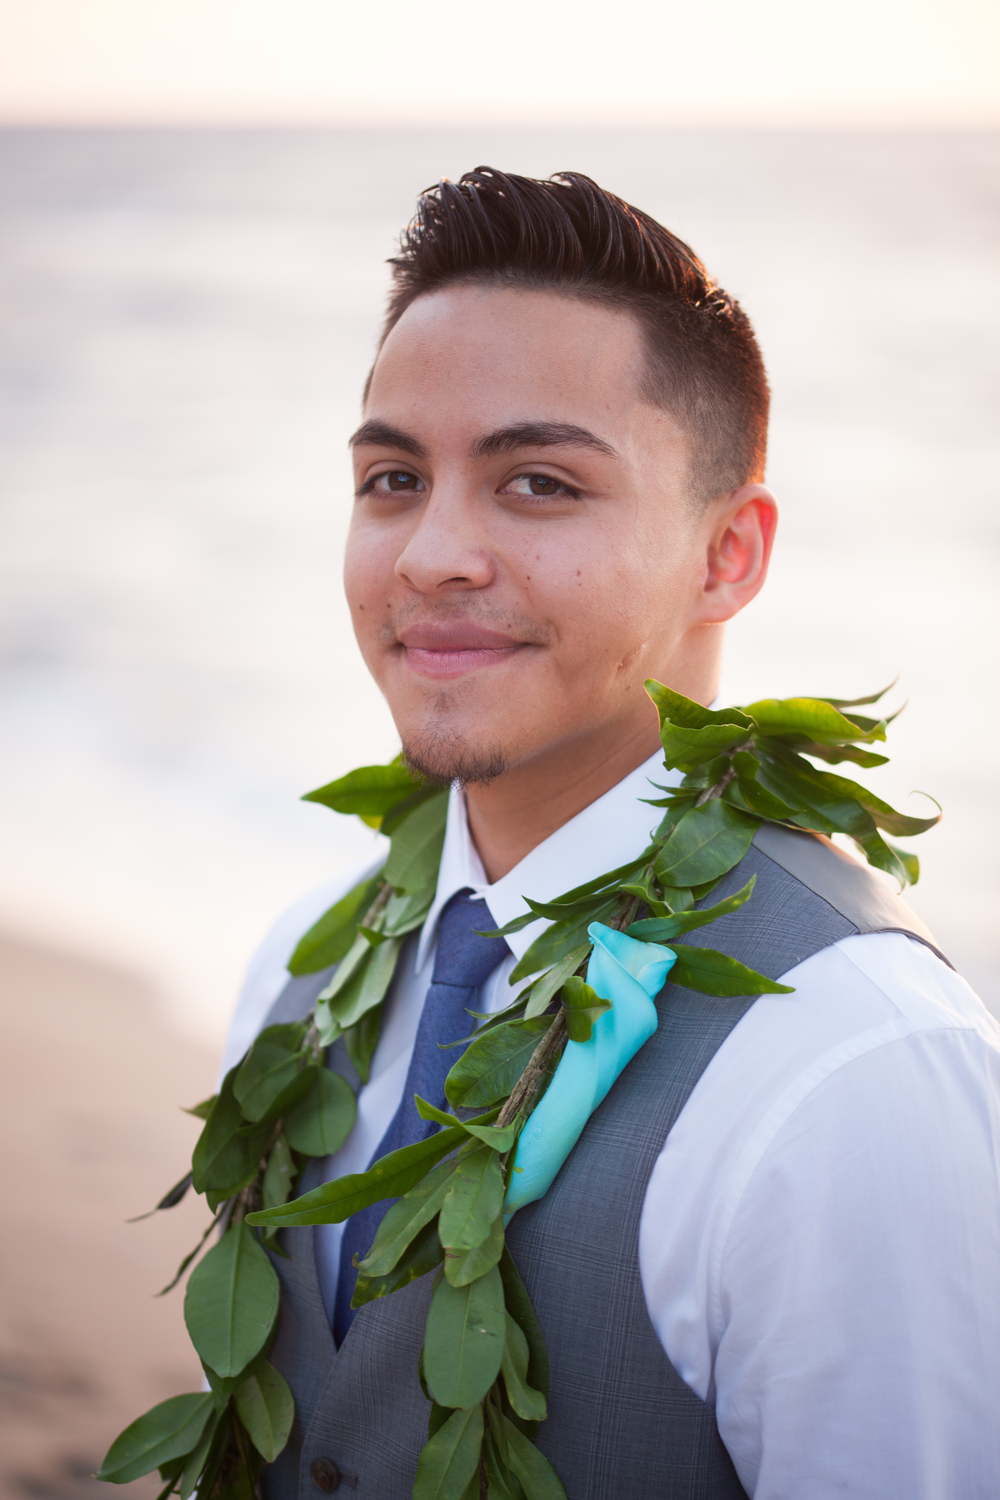 big island hawaii mauna lani resort wedding © kelilina photography 20160523184436-1.jpg